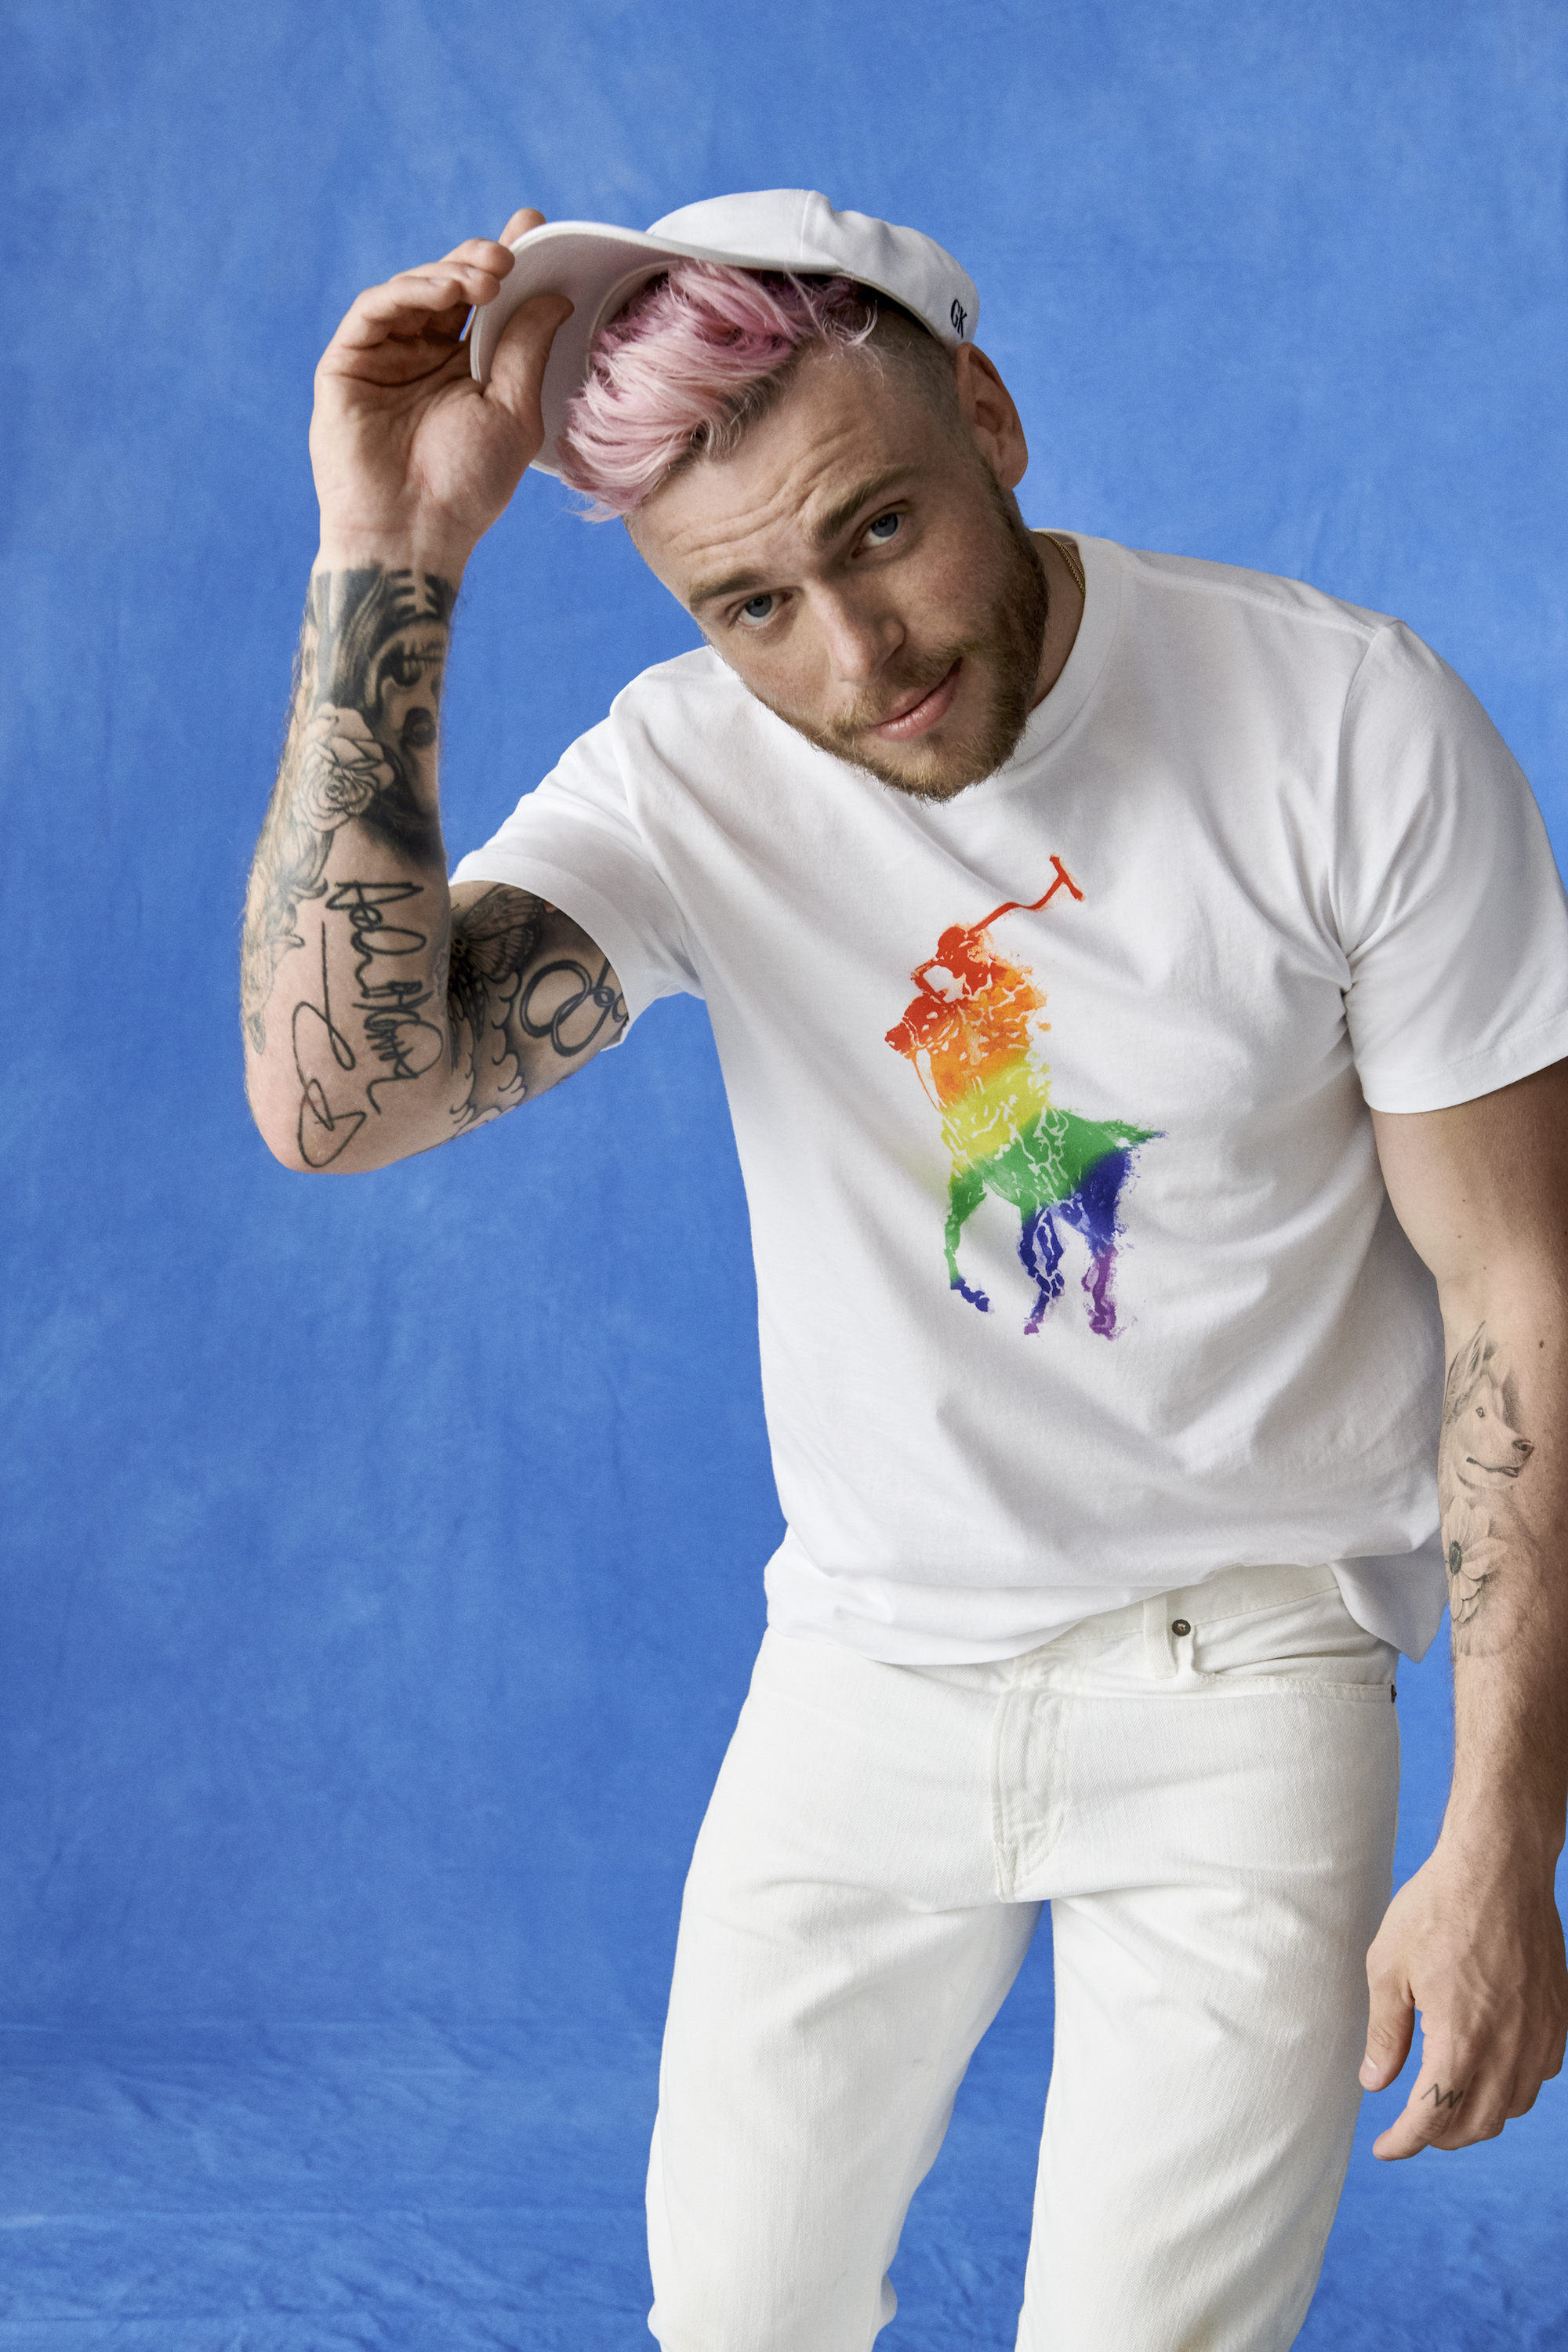 Ralph Lauren unveils its Pride collection featuring Gus Kenworthy